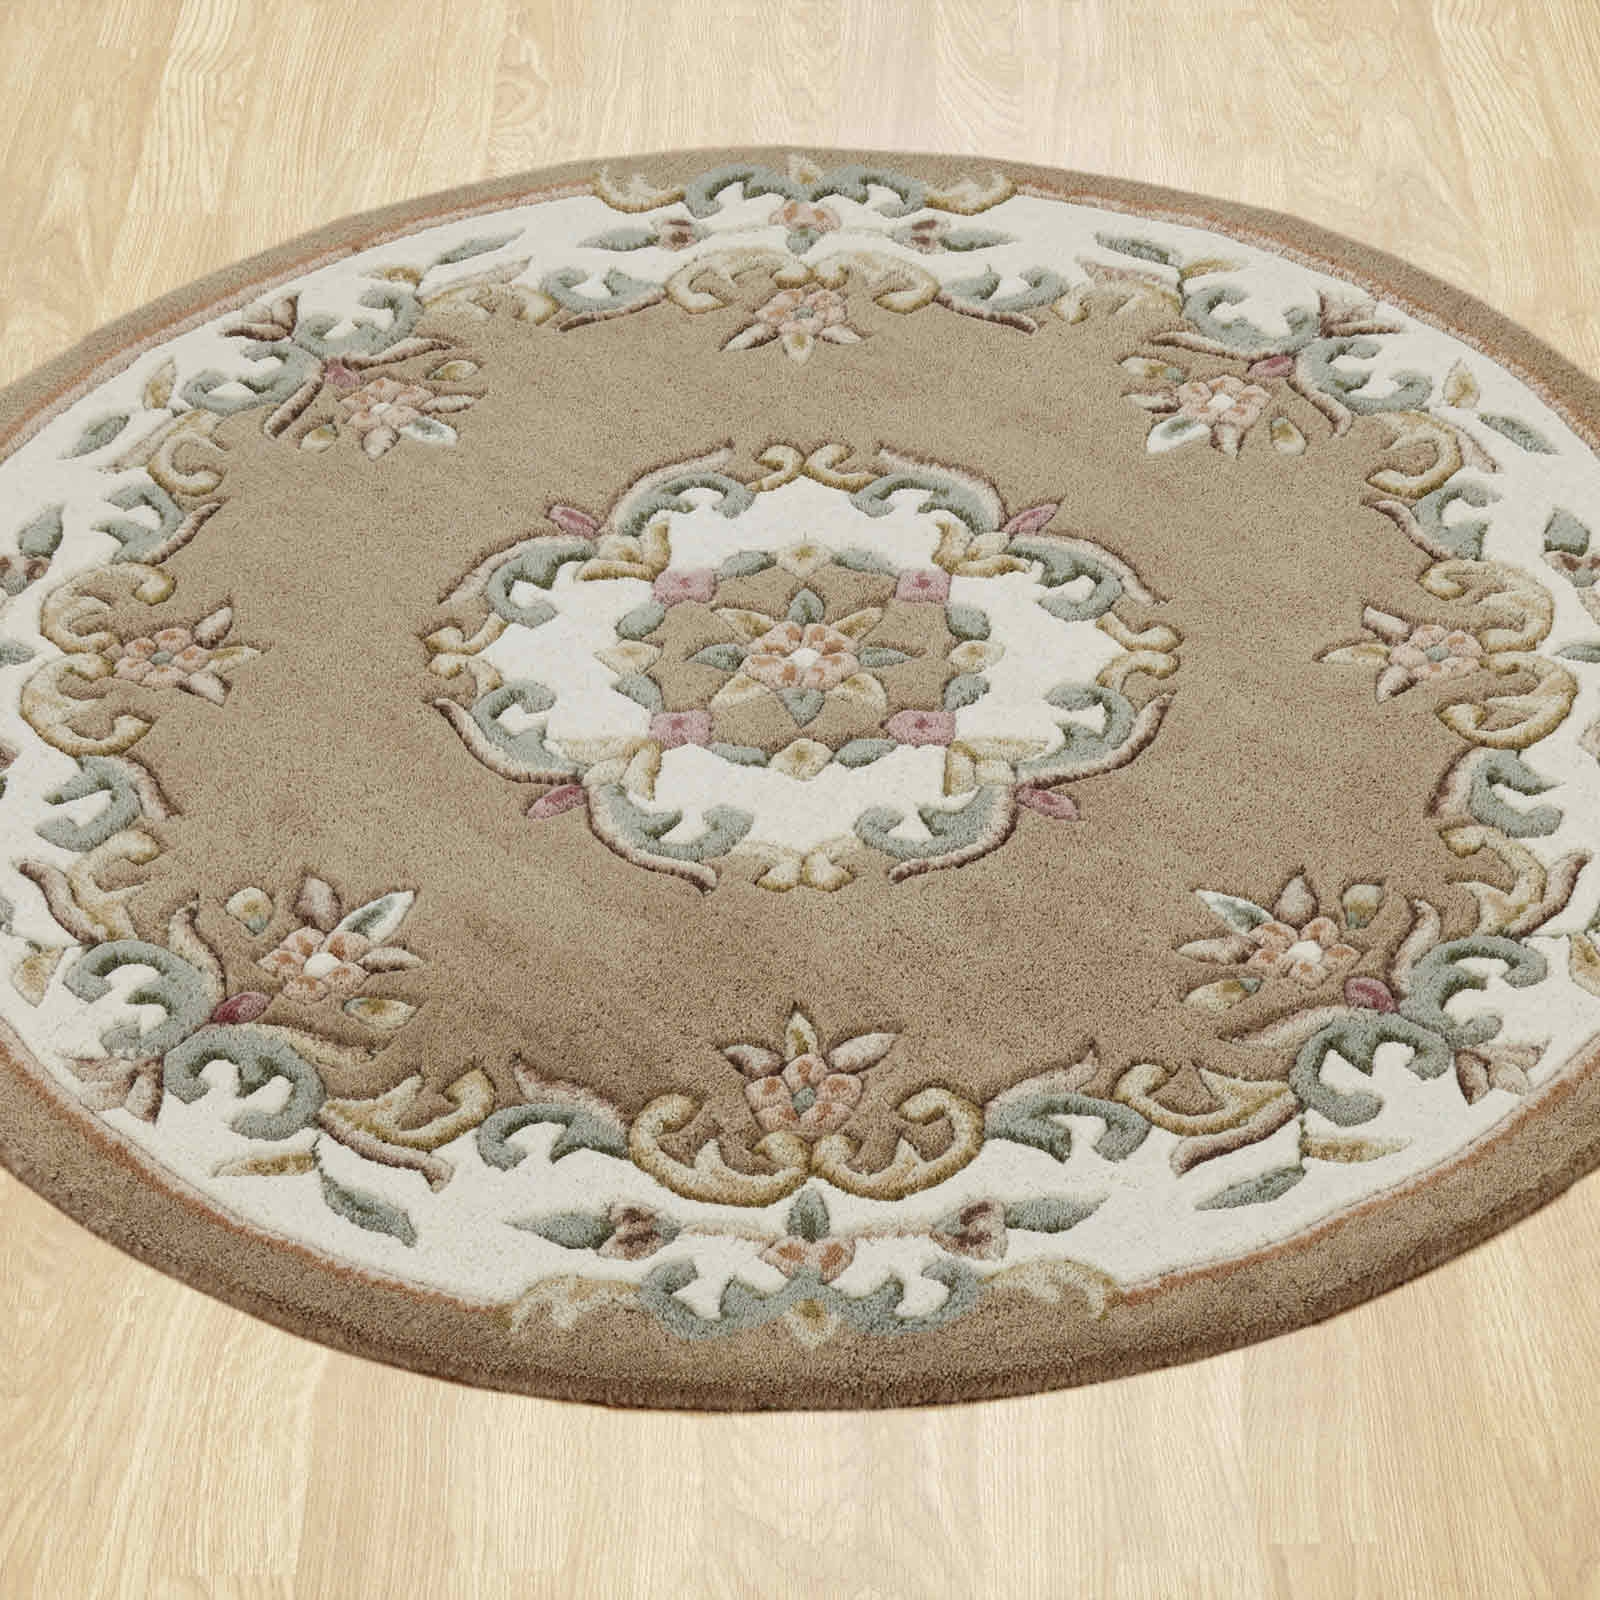 Round Rugs Uk Roselawnlutheran Throughout Rounds Rugs (Image 13 of 15)